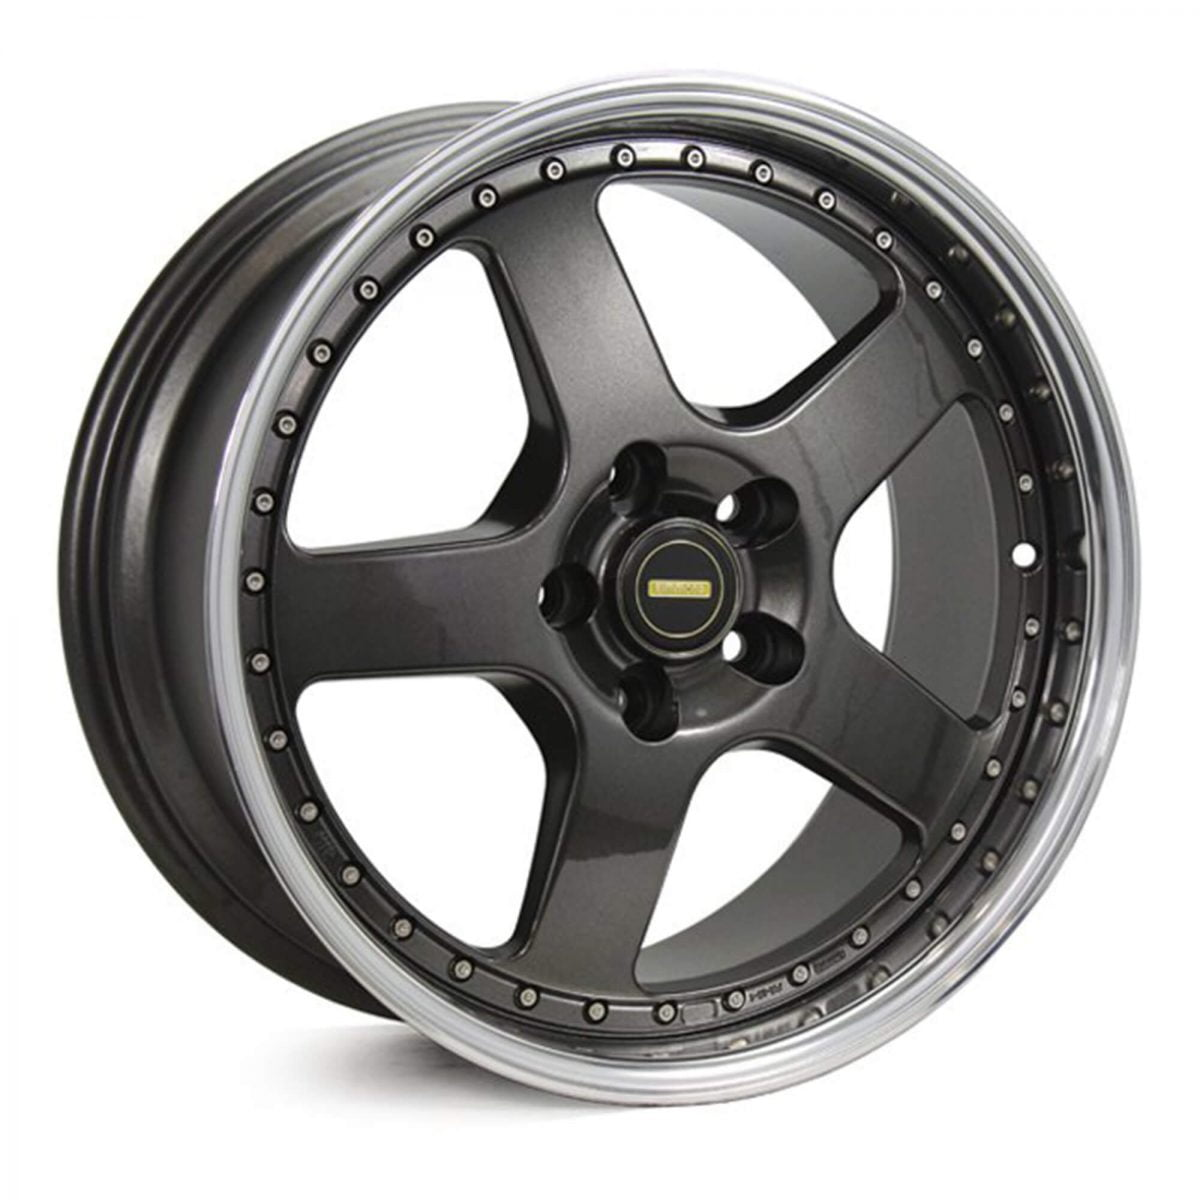 SIMMONS FR-1 HYPER DARK WHEEL